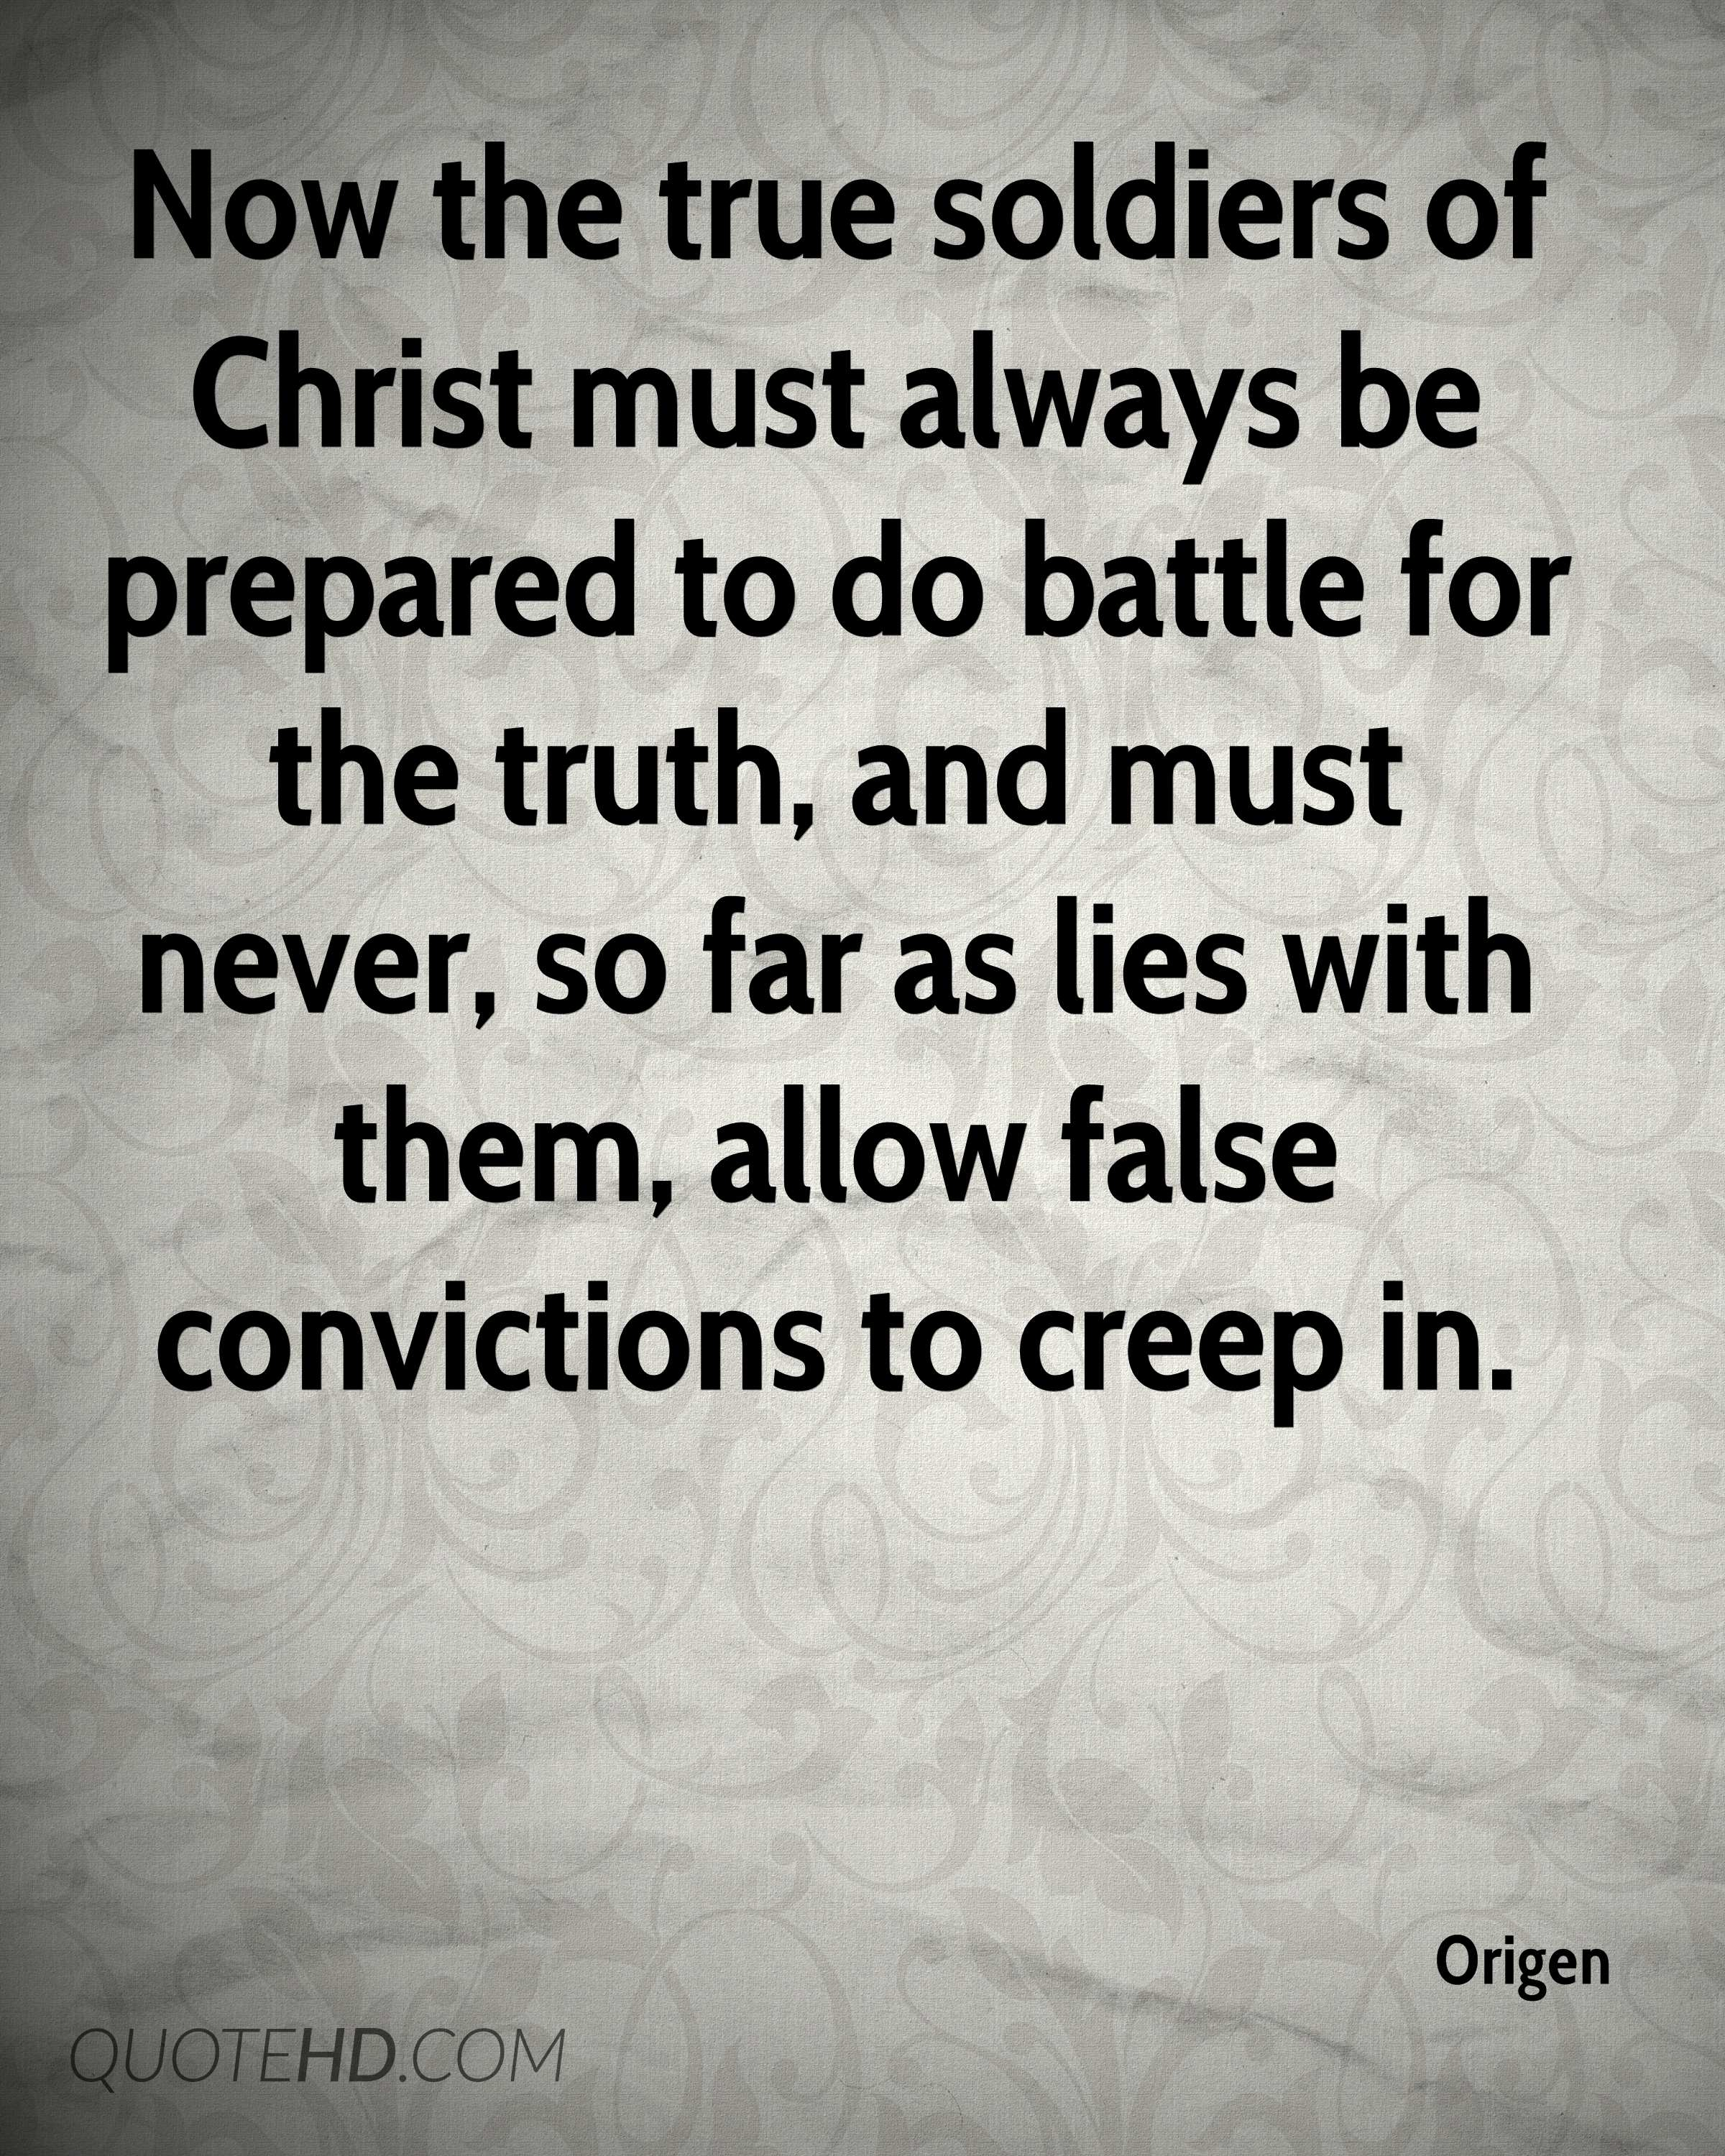 Now the true soldiers of Christ must always be prepared to do battle for the truth, and must never, so far as lies with them, allow false convictions to creep in.